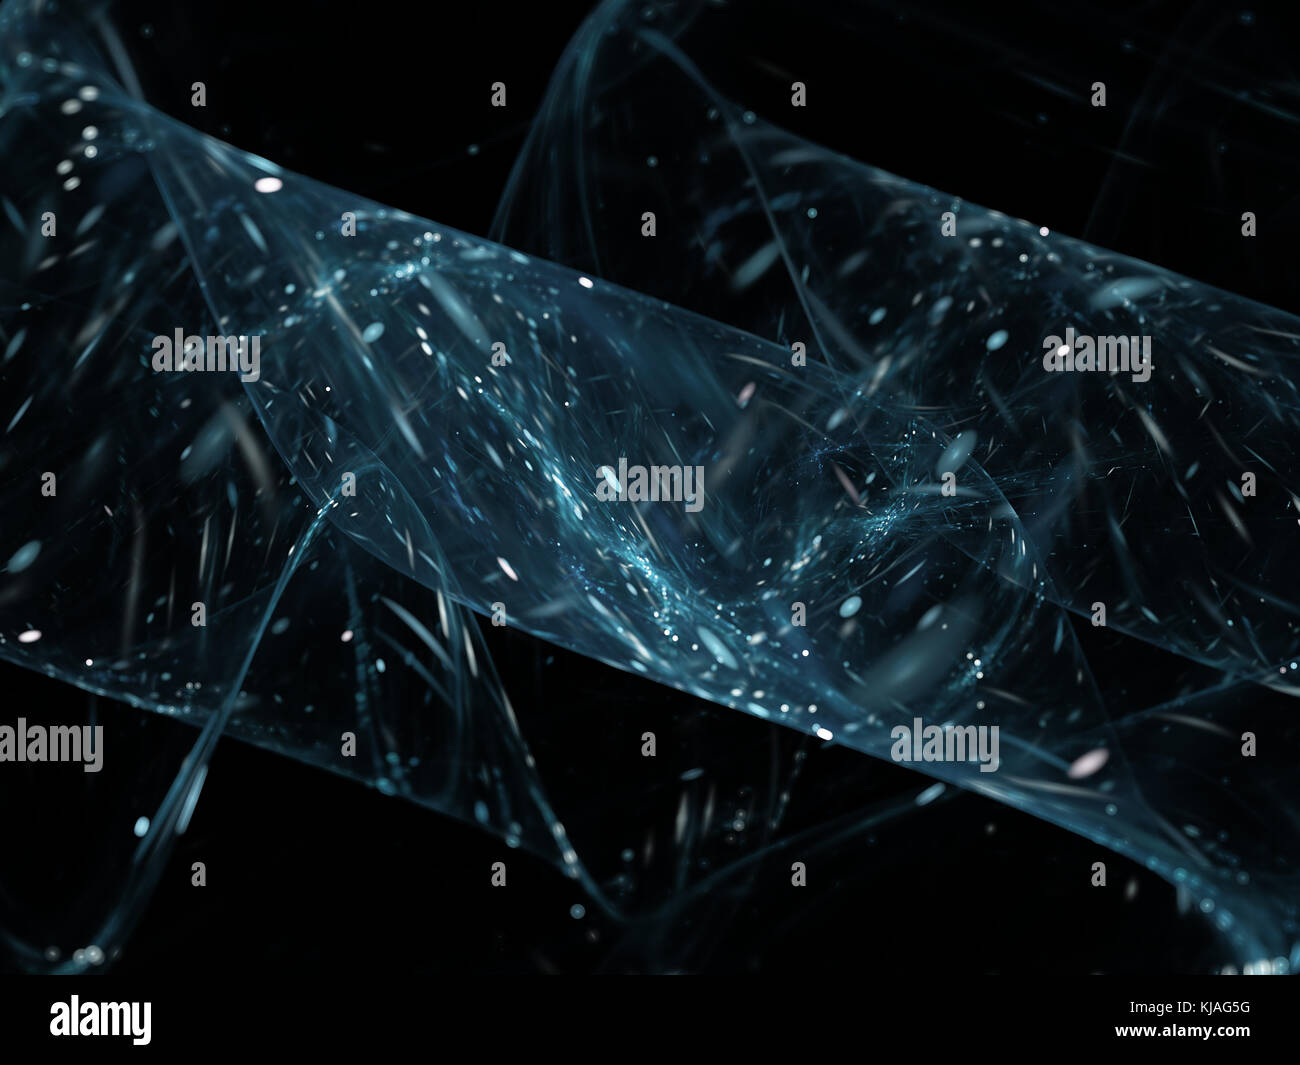 Big data analysis, computer generated abstract background, 3D rendering - Stock Image